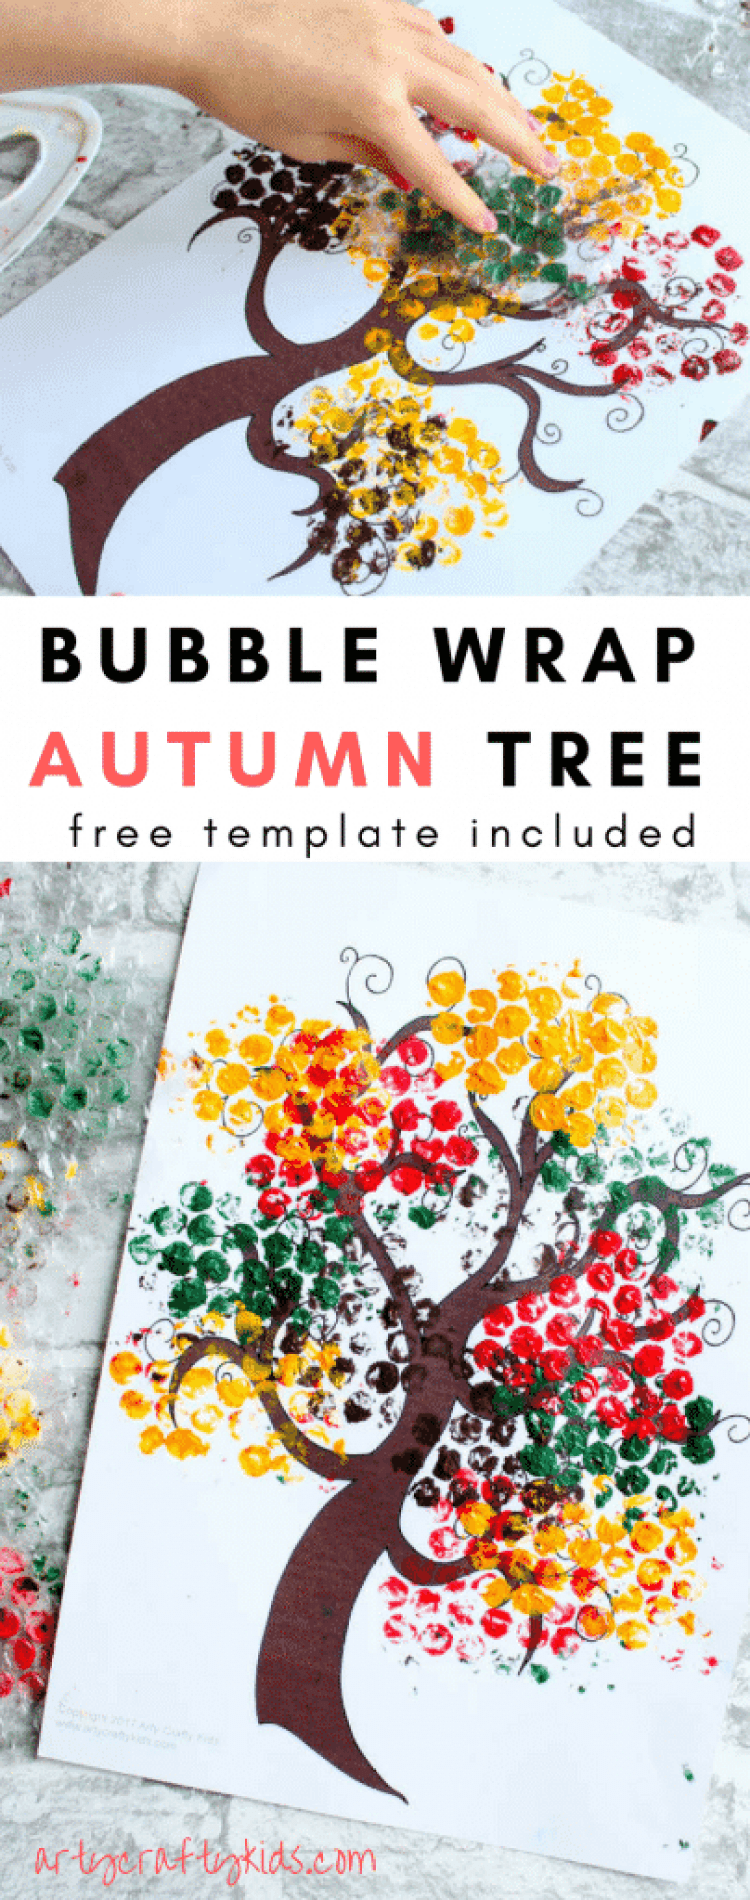 Arty Crafty Kids | Seasonal | Autumn Crafts for Kids | Bubble Wrap Autumn Tree Craft | A fun and simple Autumn Tree Craft for Kids, with a free tree template included for download!